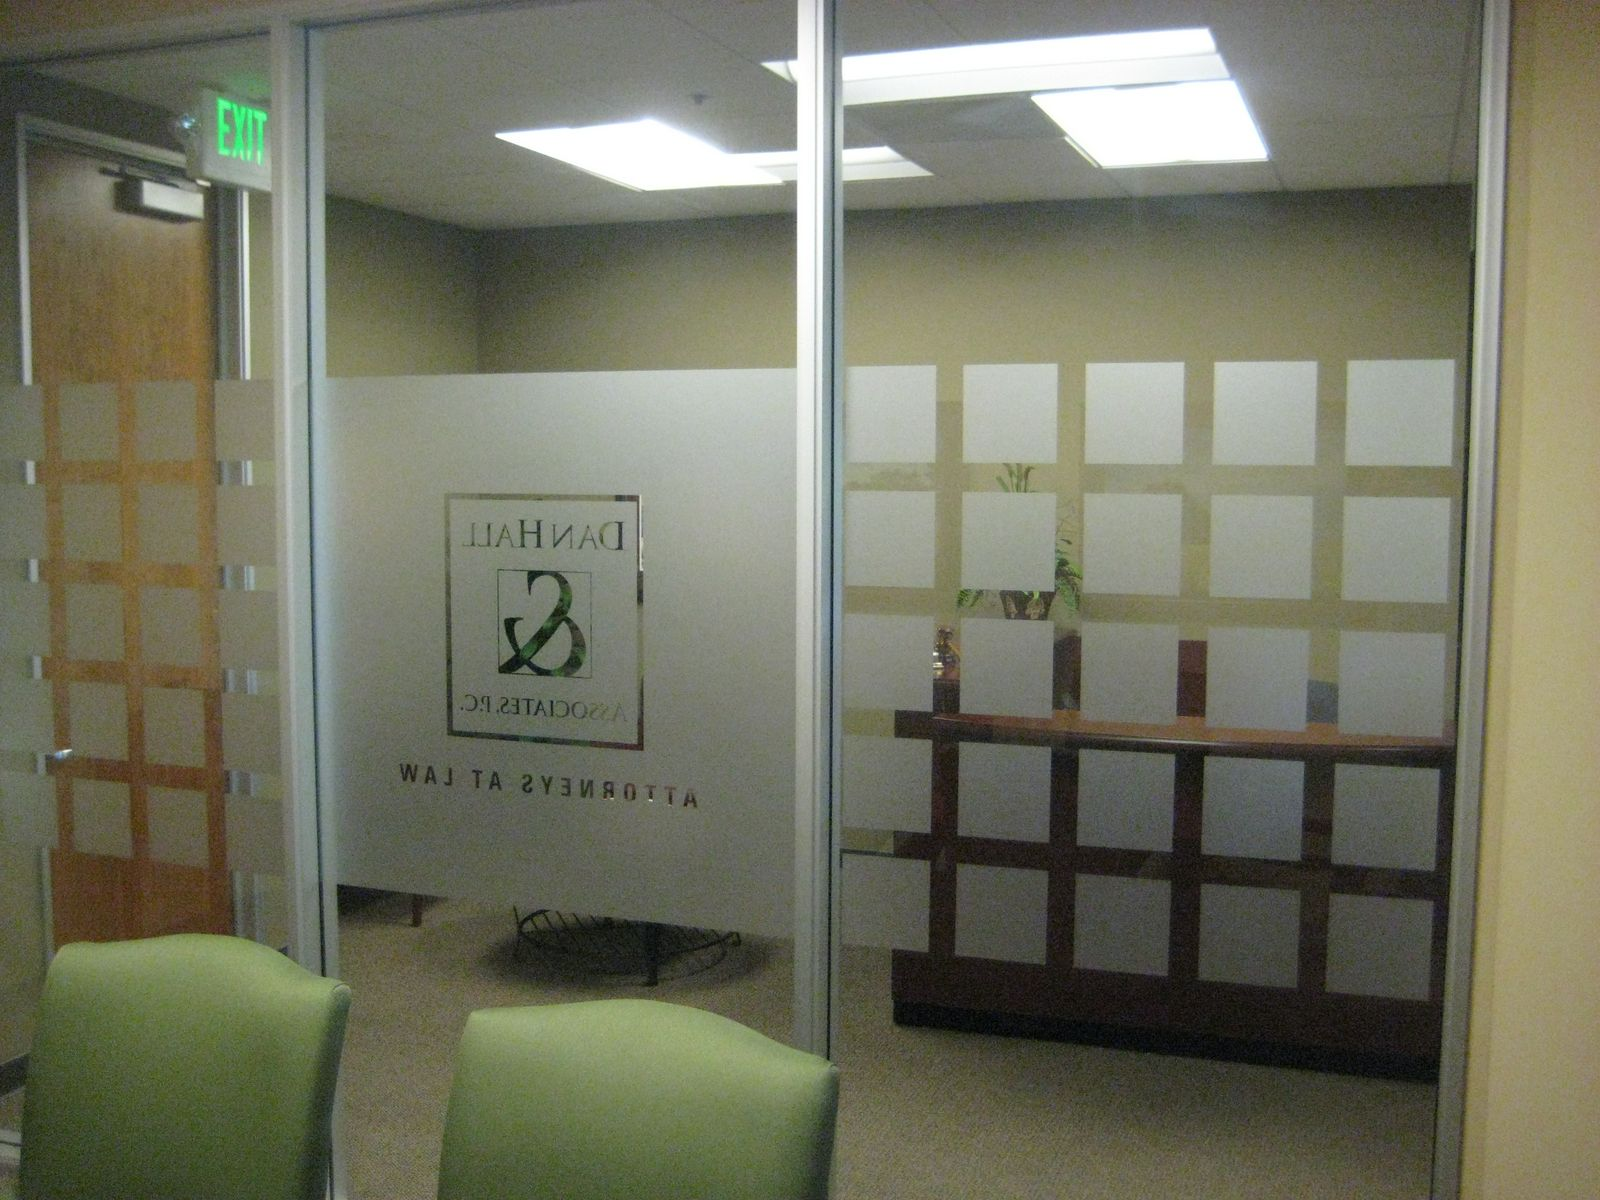 3m Commercial Window Tinting Privacy Film By Reflections